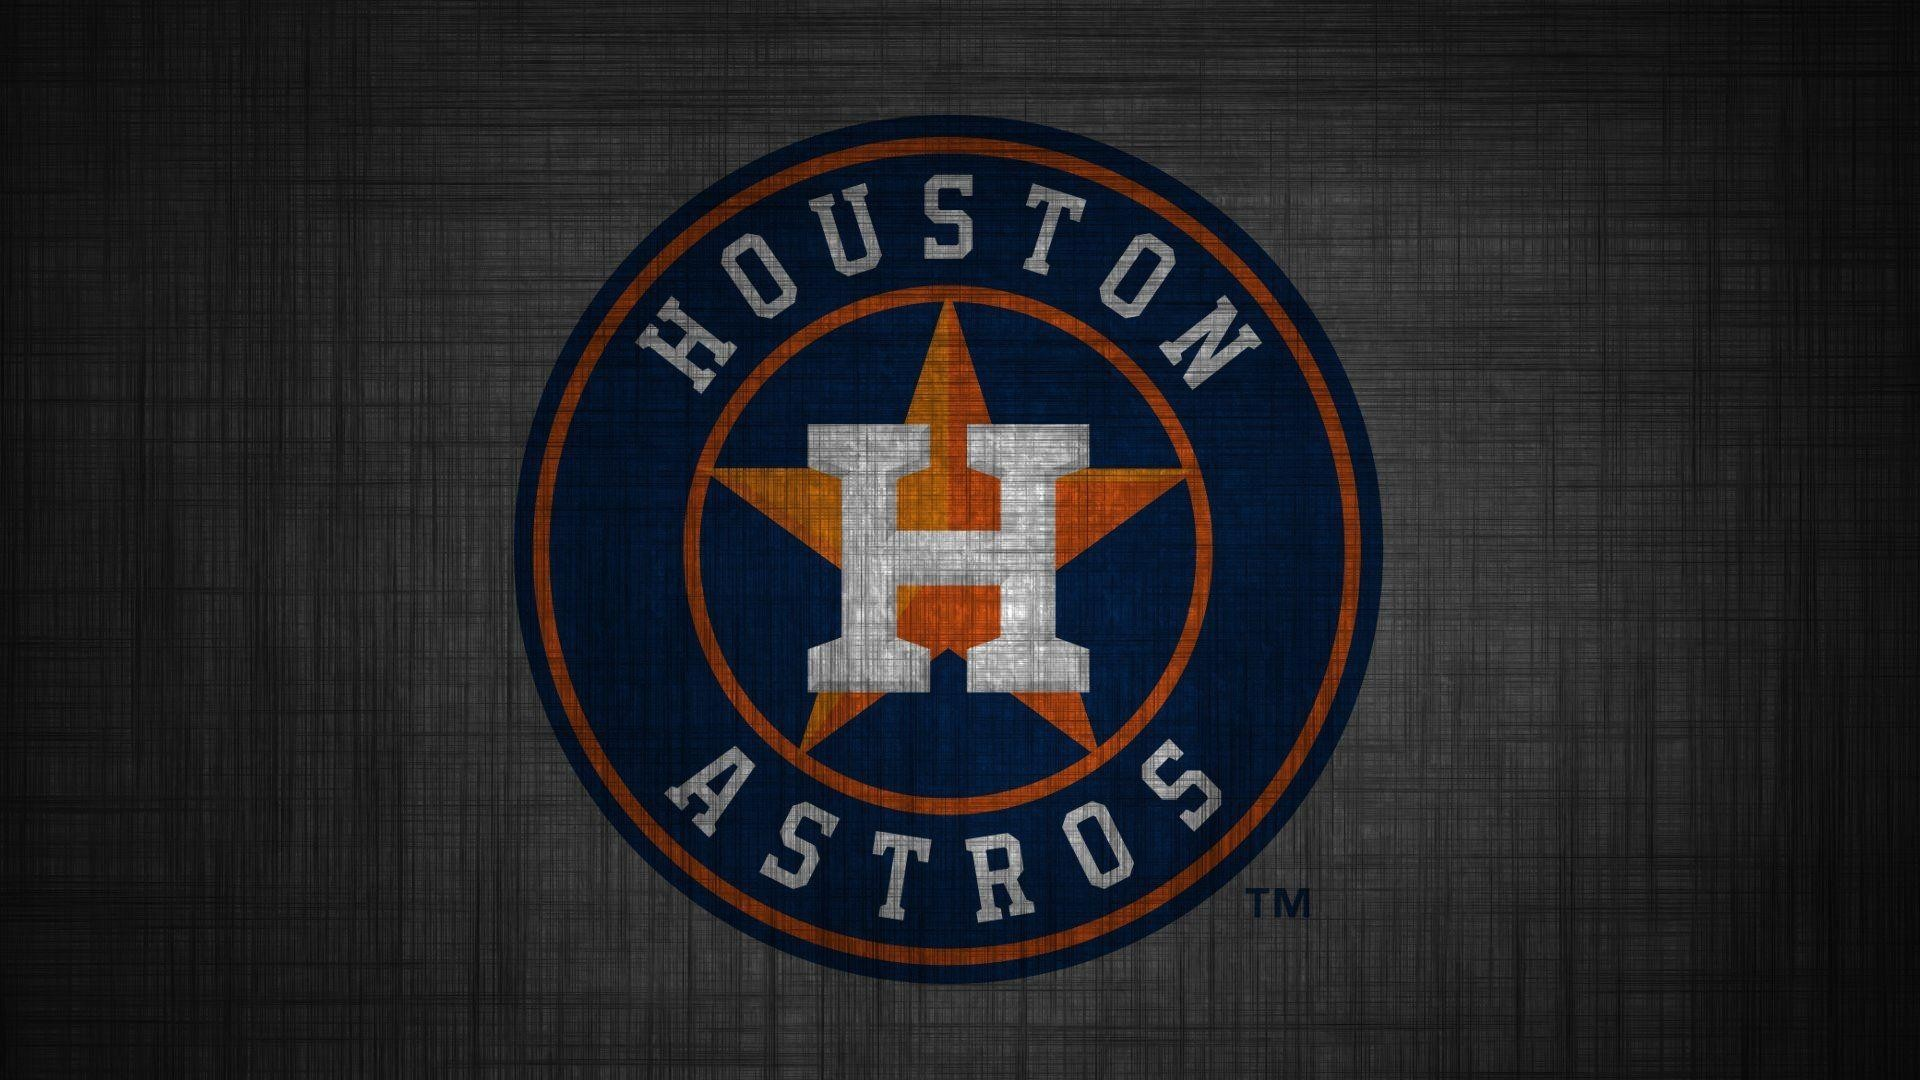 Houston Astros Wallpaper HD (74+ images)